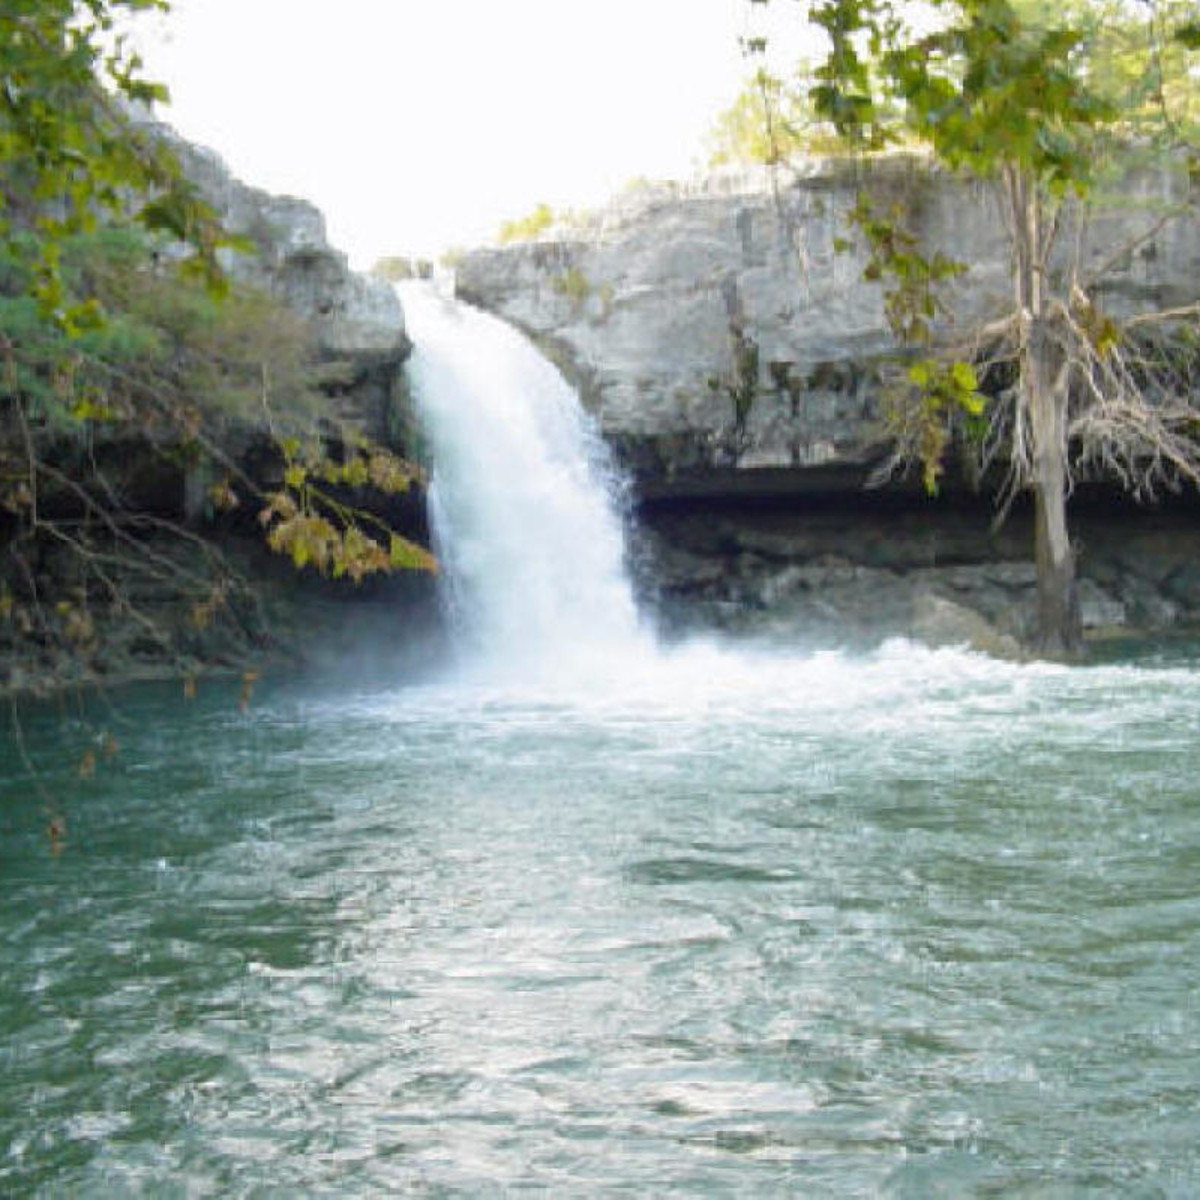 Edge Falls in Kendall County